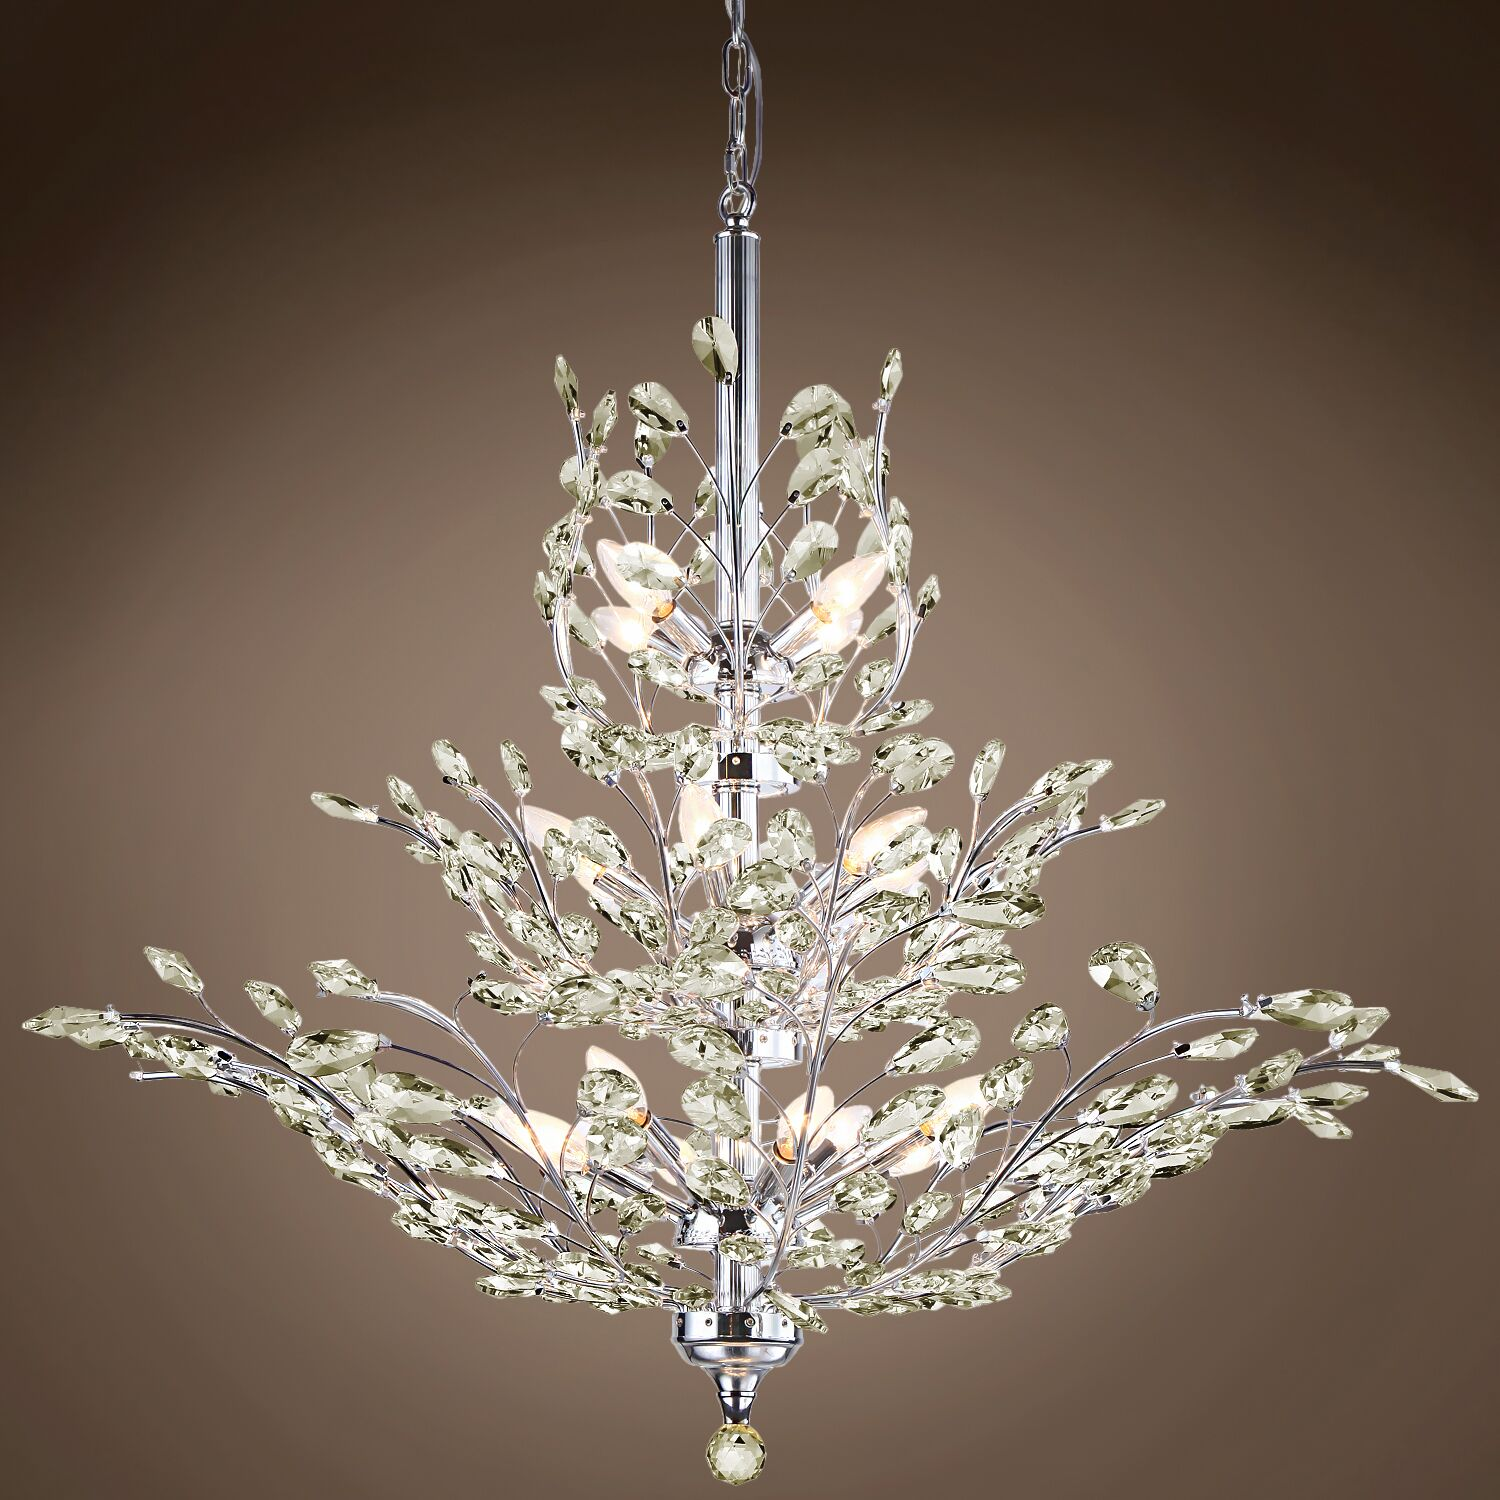 Mefford 13-Light Candle Style Chandelier Finish: Golden Teak, Crystal Grade: European, Bulb Type: No Bulbs